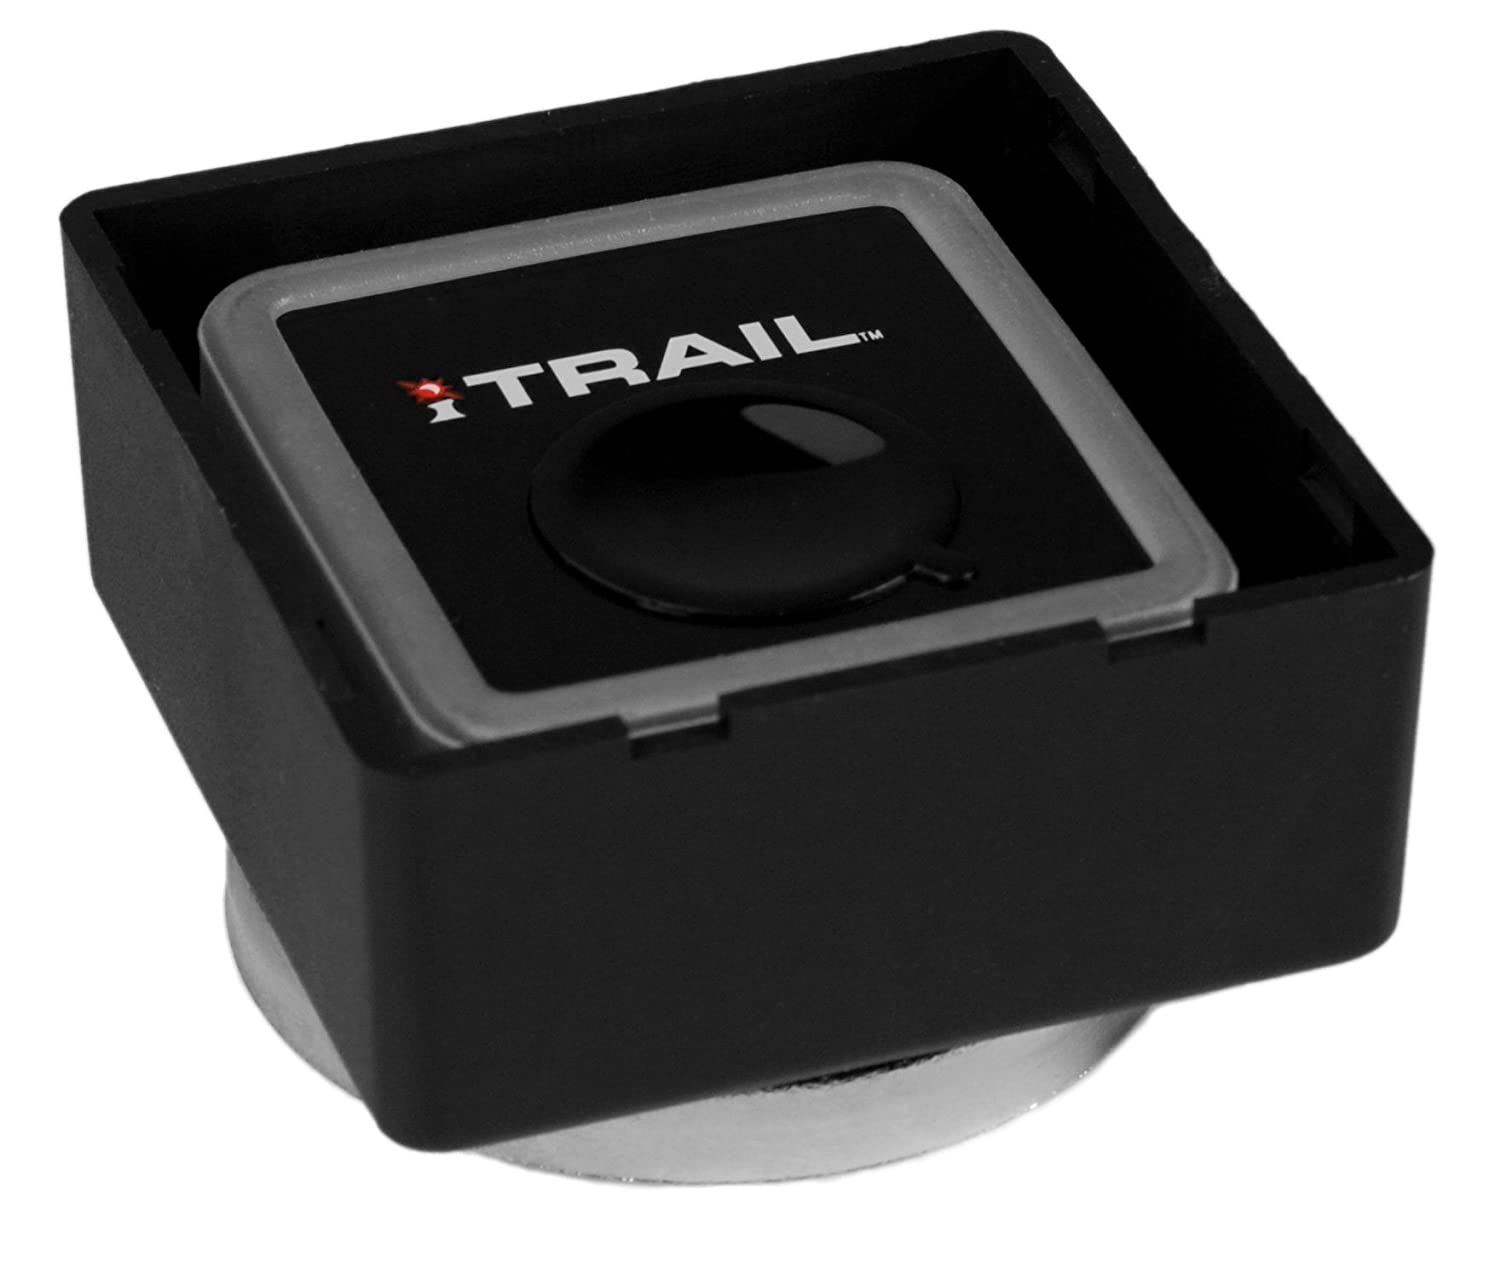 Sleuthgear itrail GPS Logger mit Fall